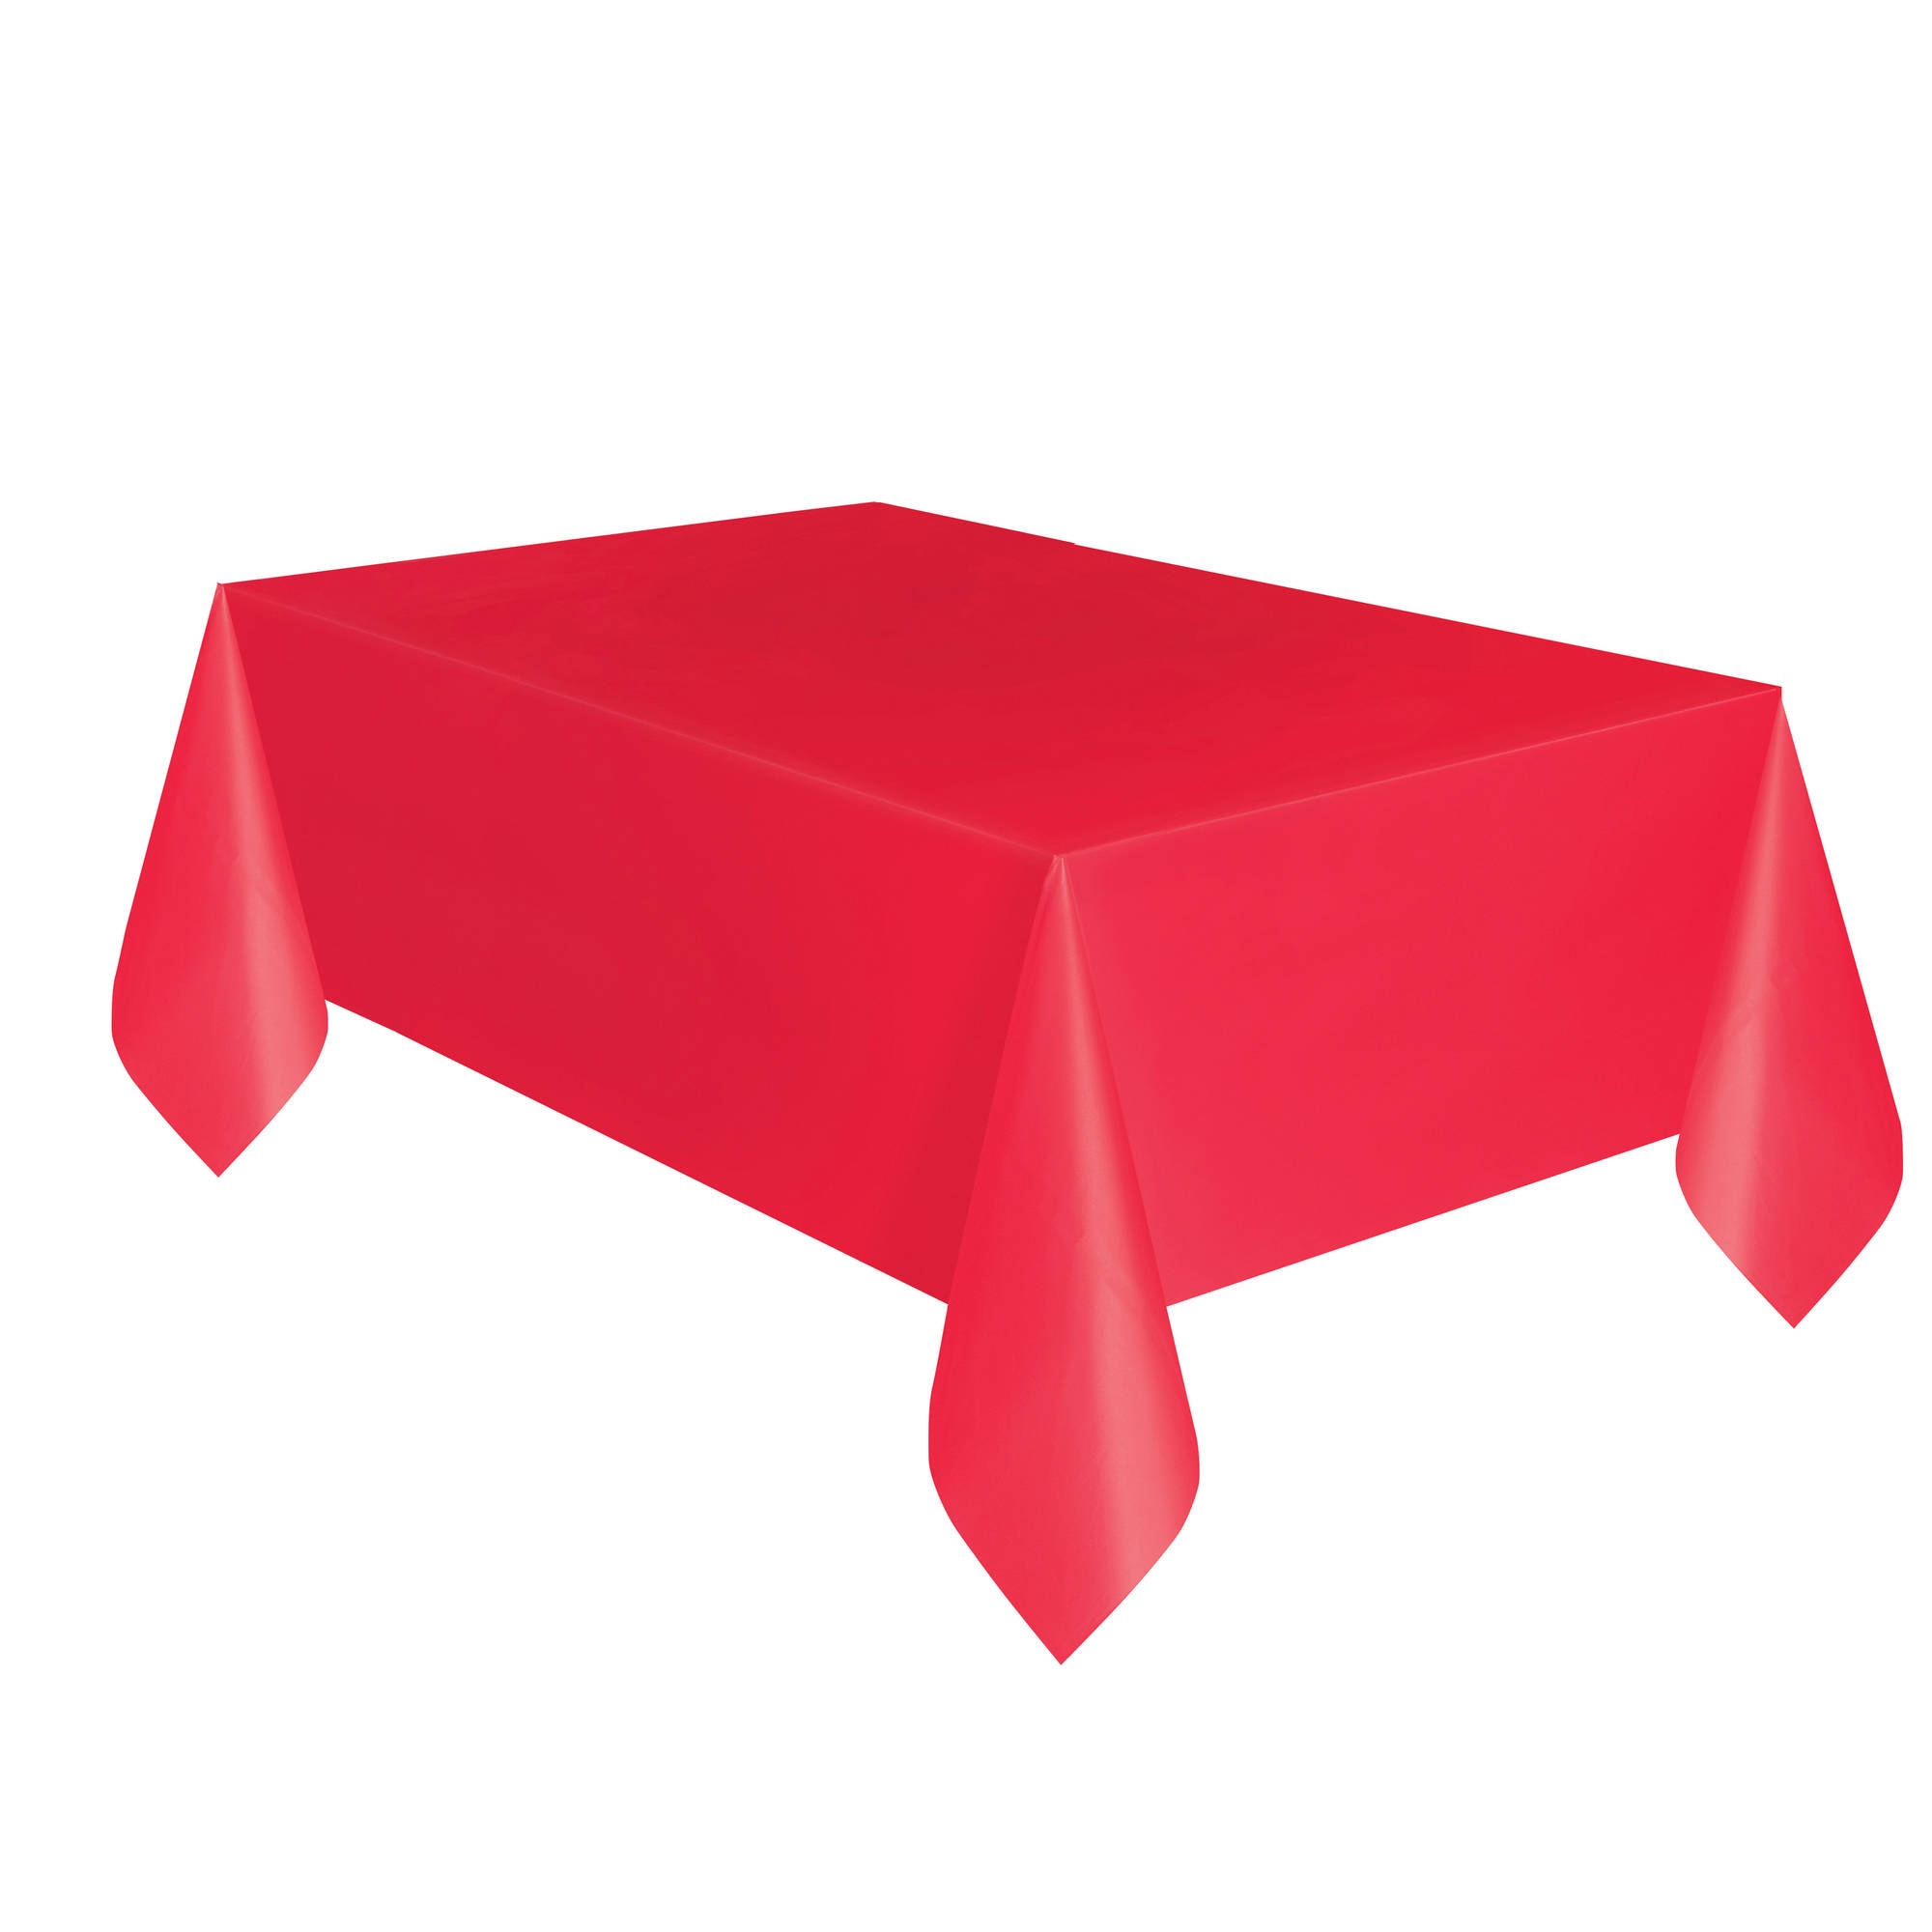 Red Plastic Tablecloth, 108 X 54 In, 2ct